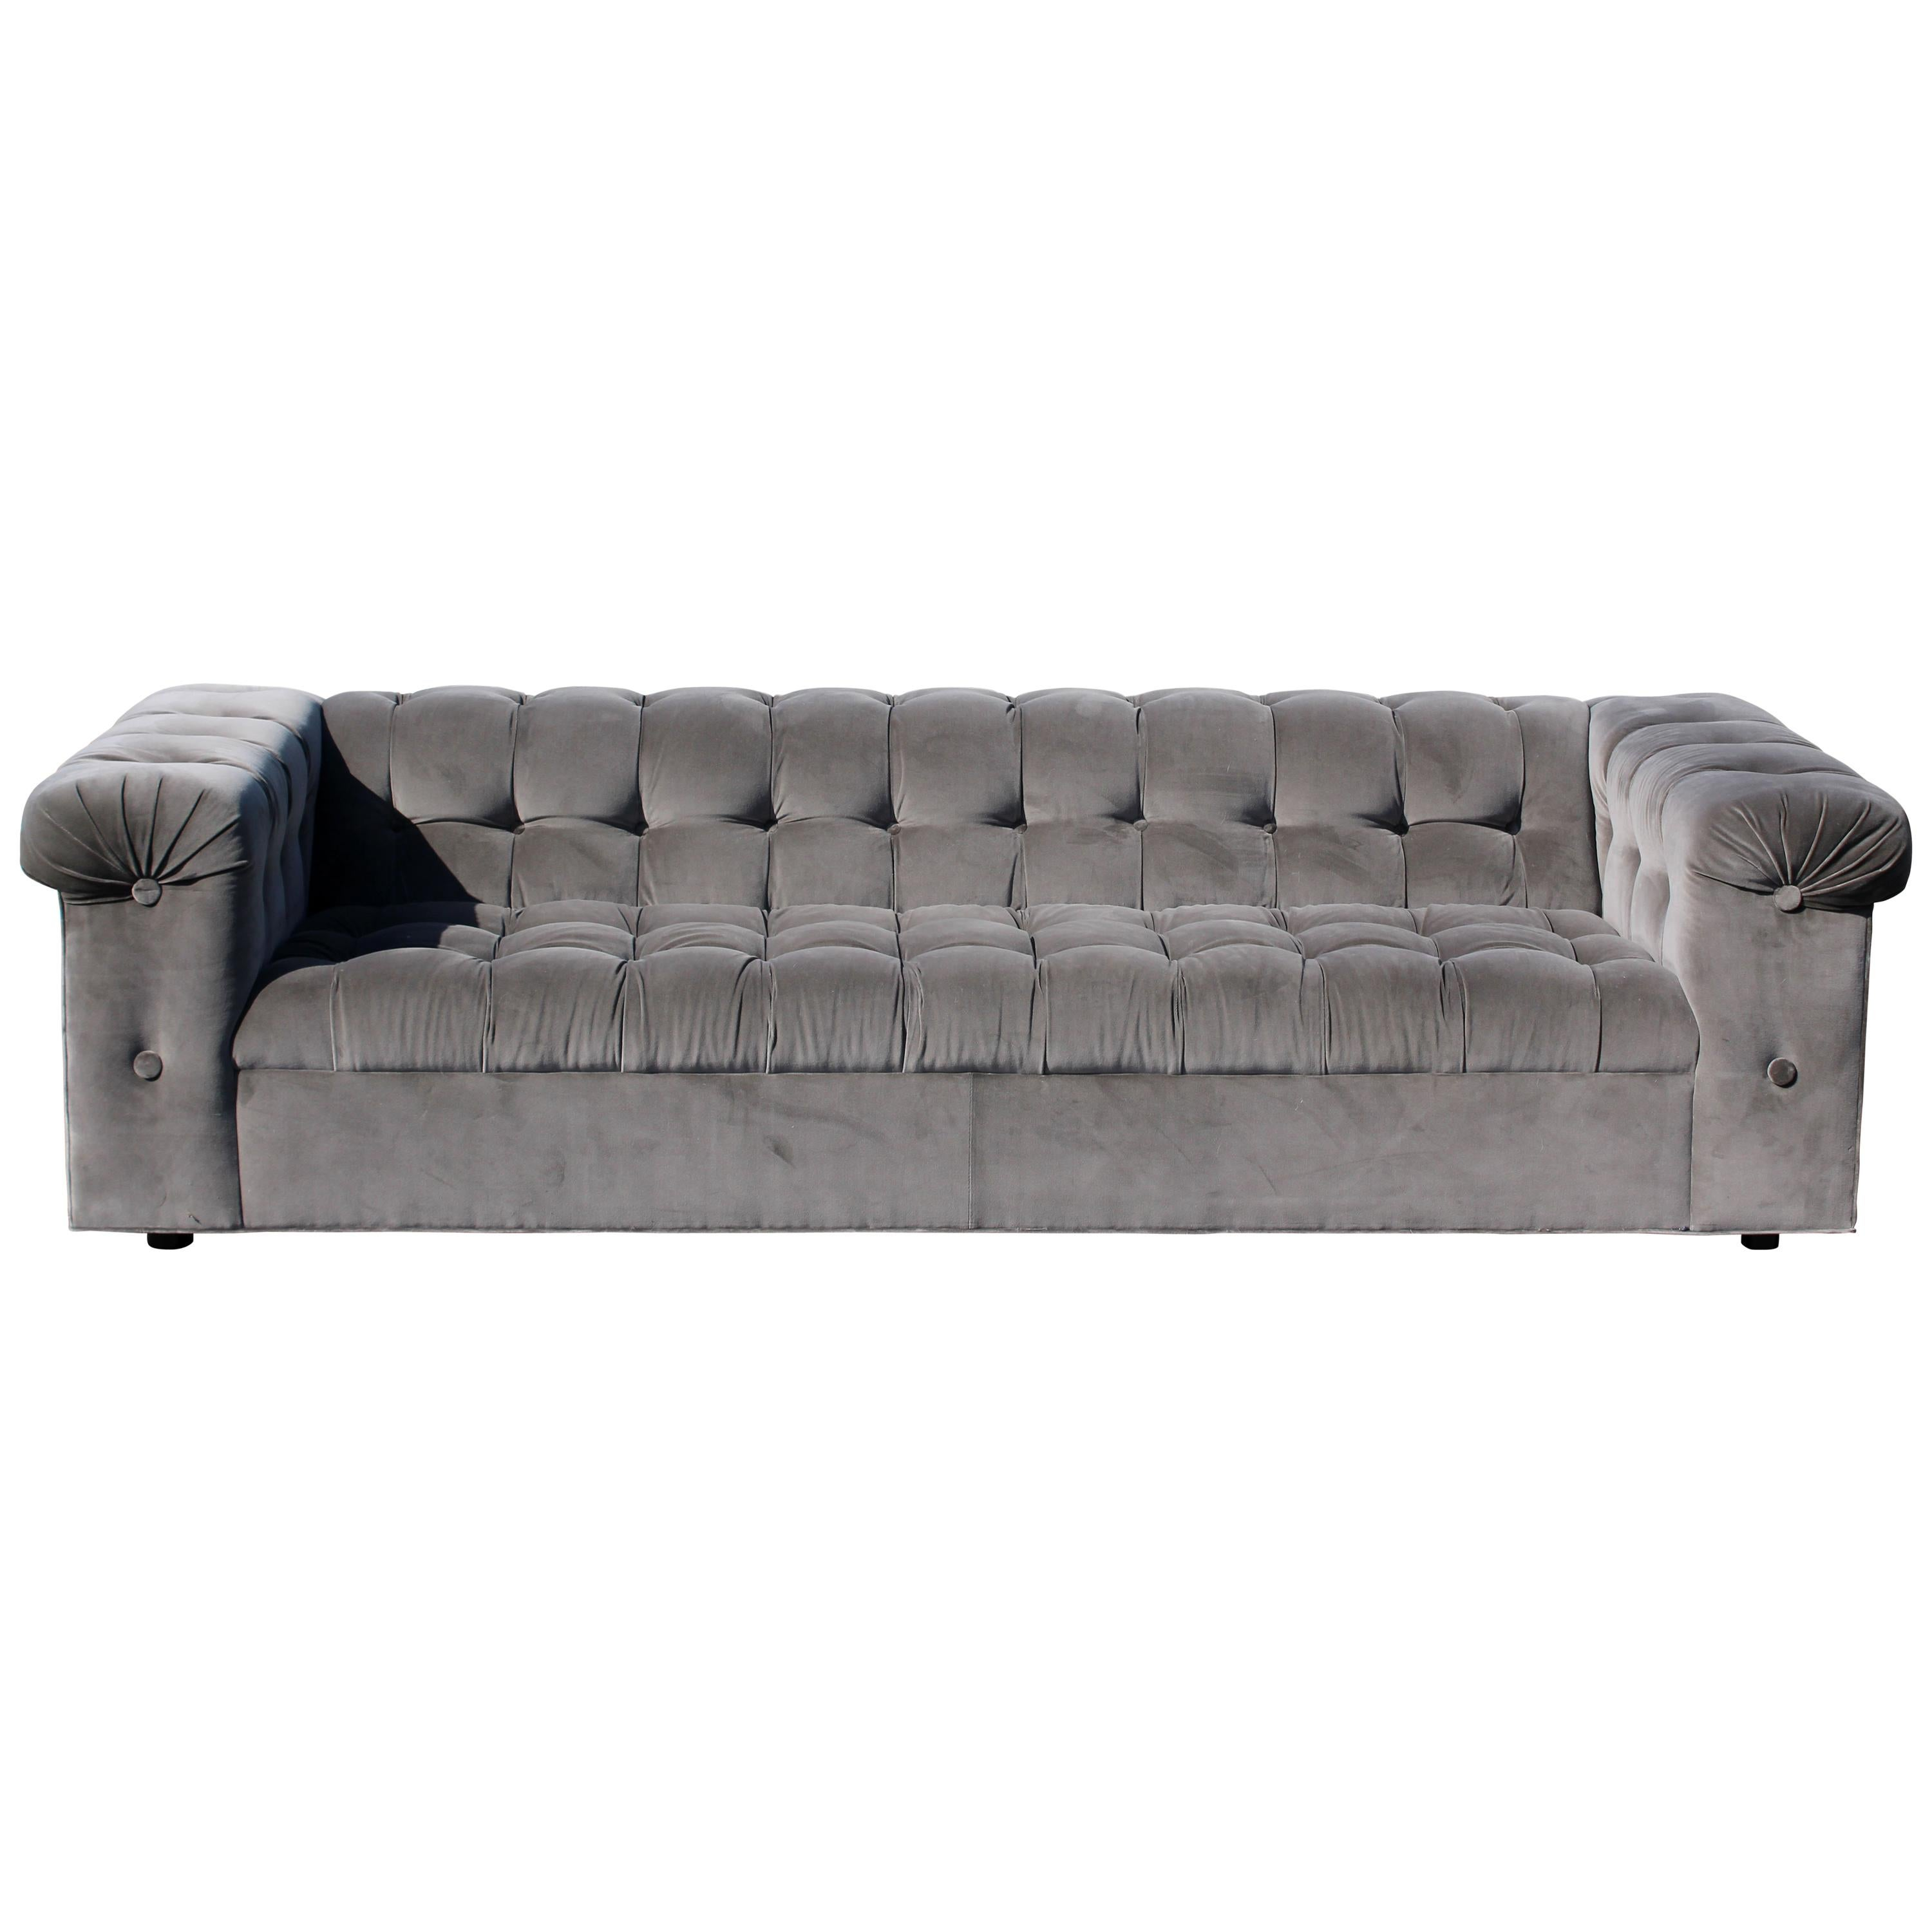 Sofa X Long Mid Century Modern X Long Dunbar Tufted Grey Velvet Party Sofa Model 7160